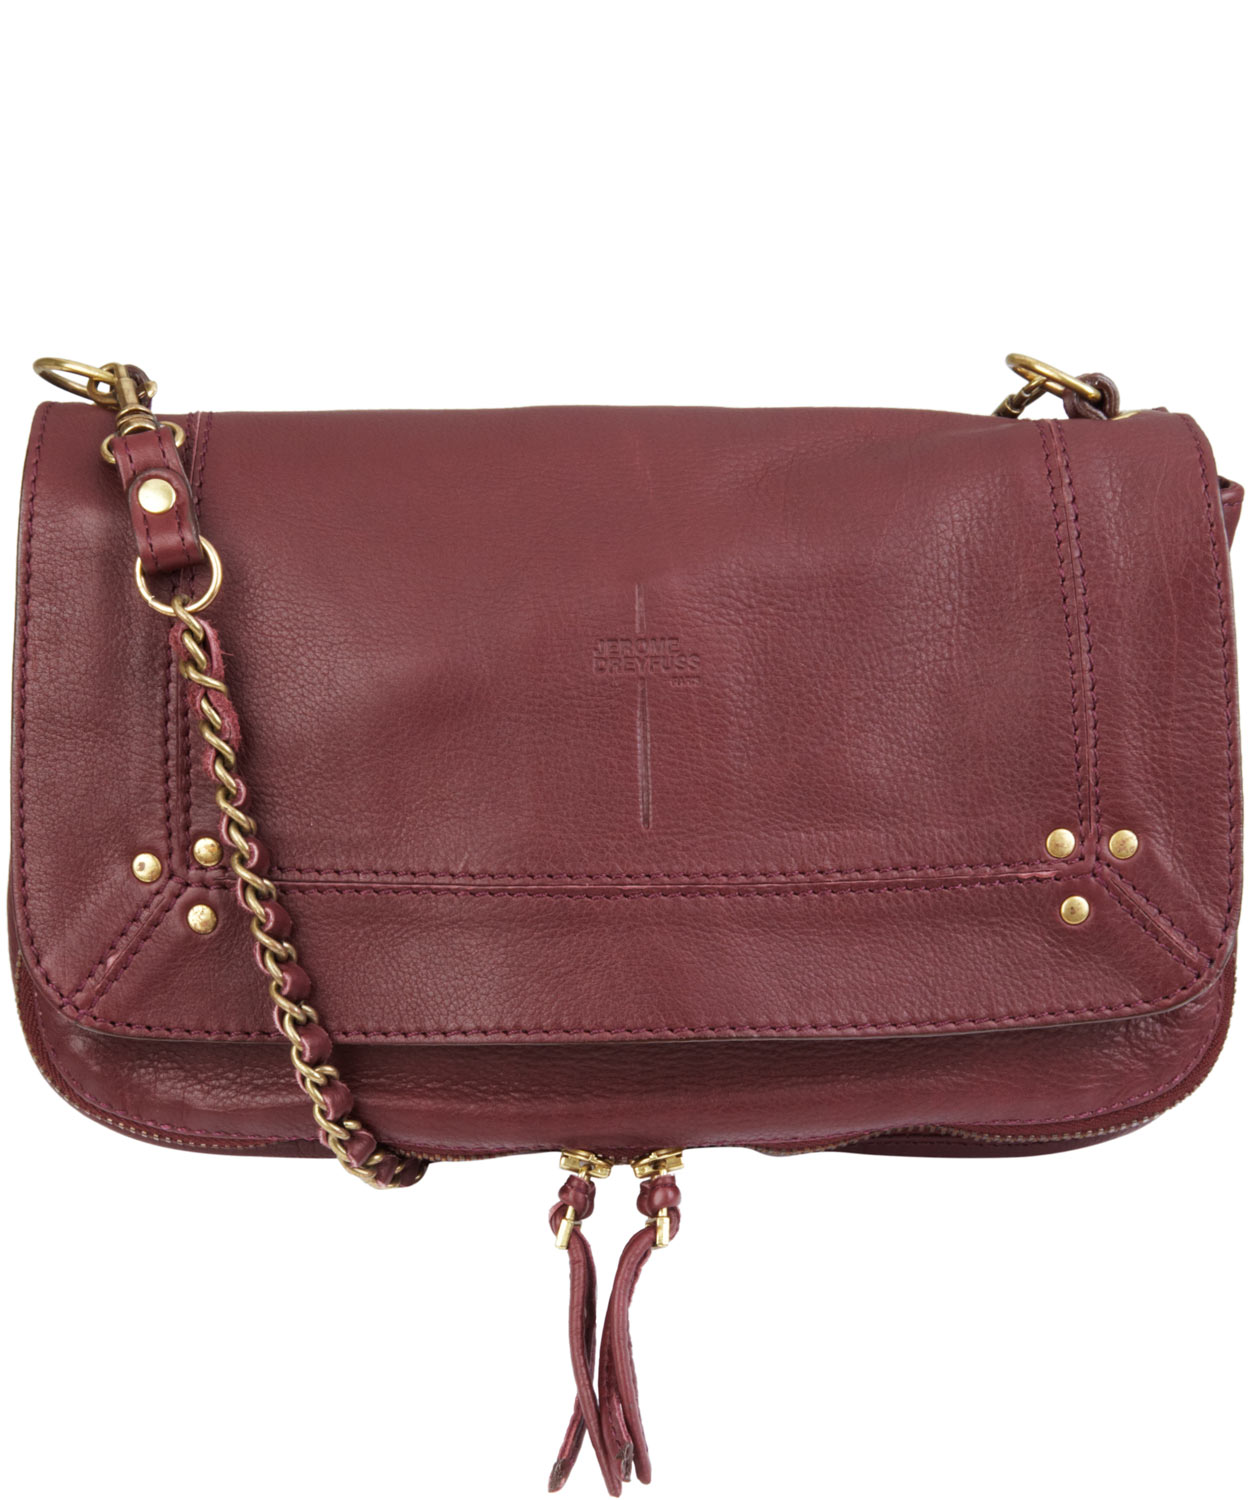 Lyst - Jérôme Dreyfuss Burgundy Bobi Soft Shoulder Bag in Red 66e64a513